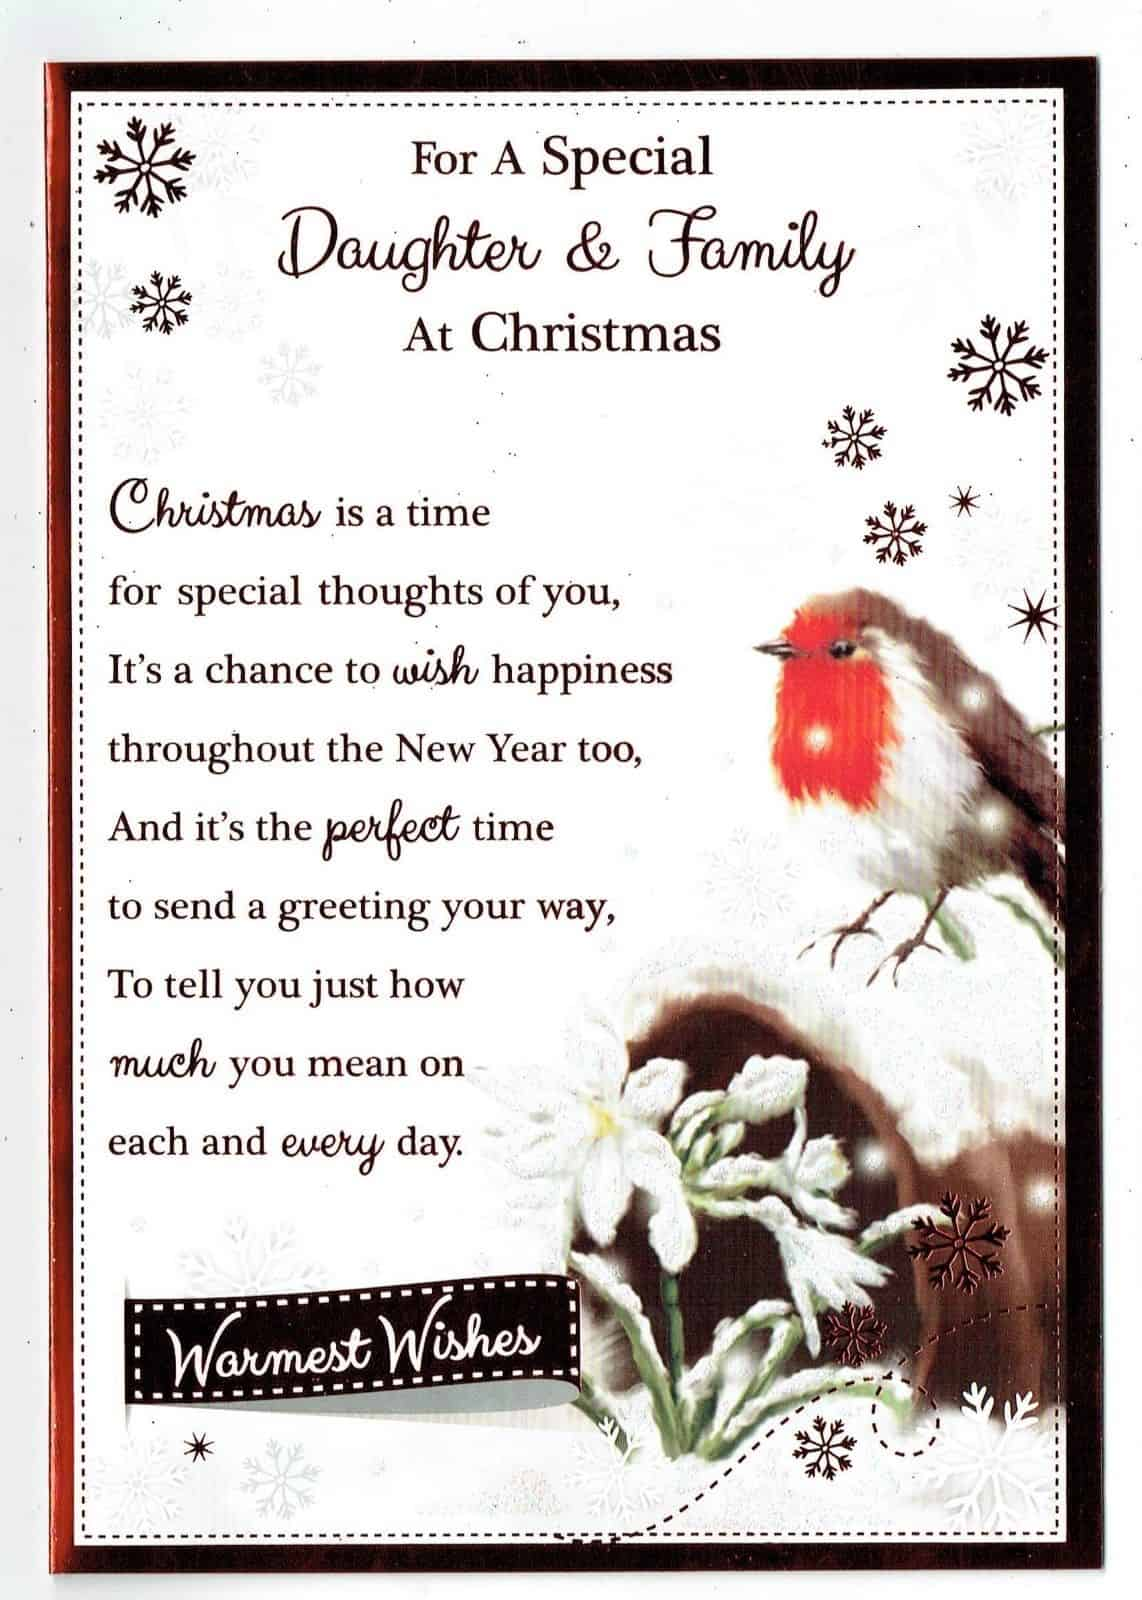 Christmas Card Verses.Daughter Family Christmas Card With Robin And Sentiment Verse Design